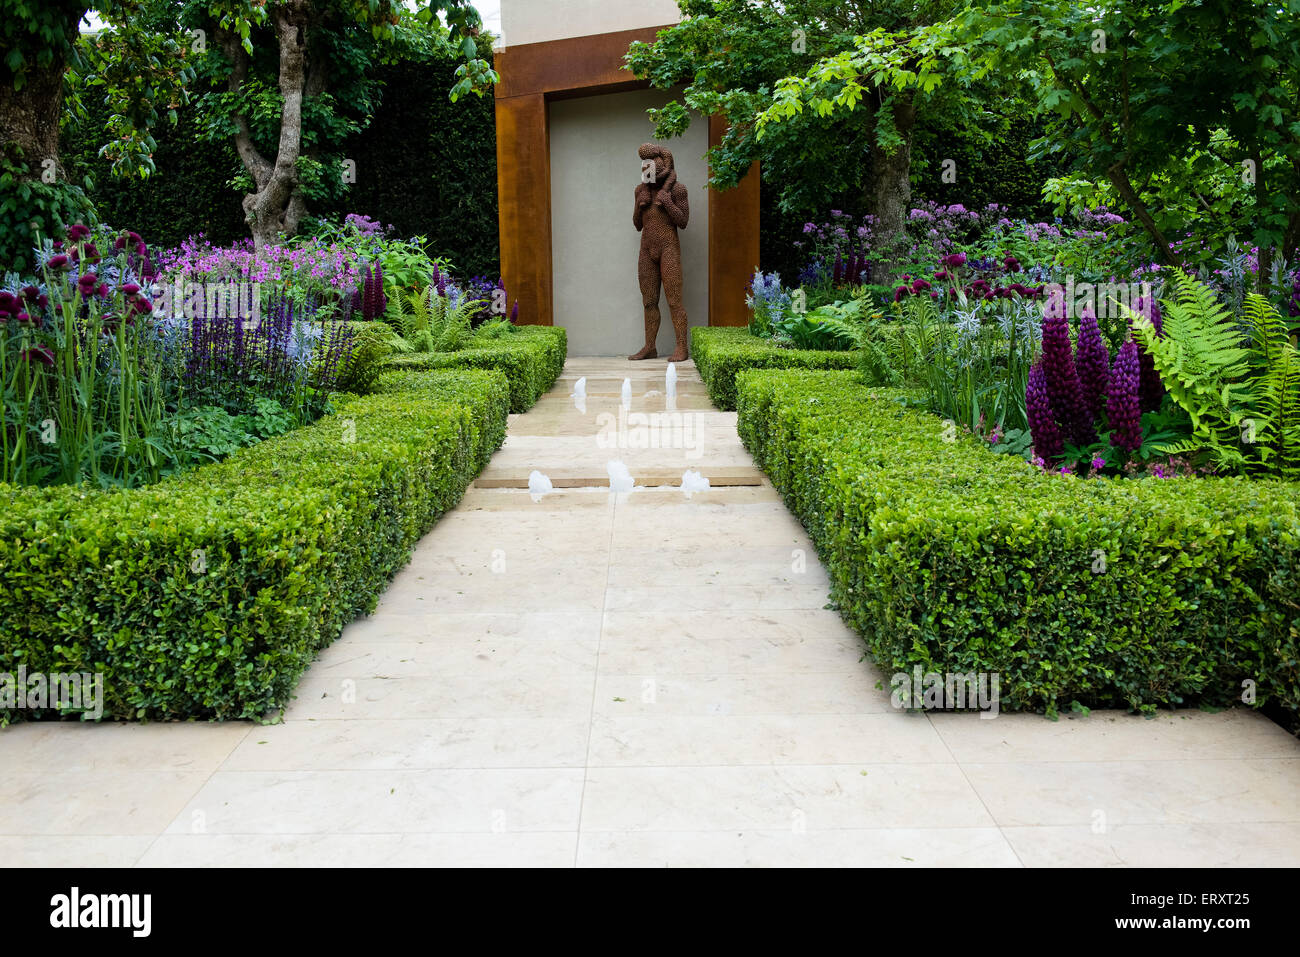 The morgan stanley healthy cities garden gold medal winner rhs stock photo royalty free image - Chelsea flower show gold medal winners ...